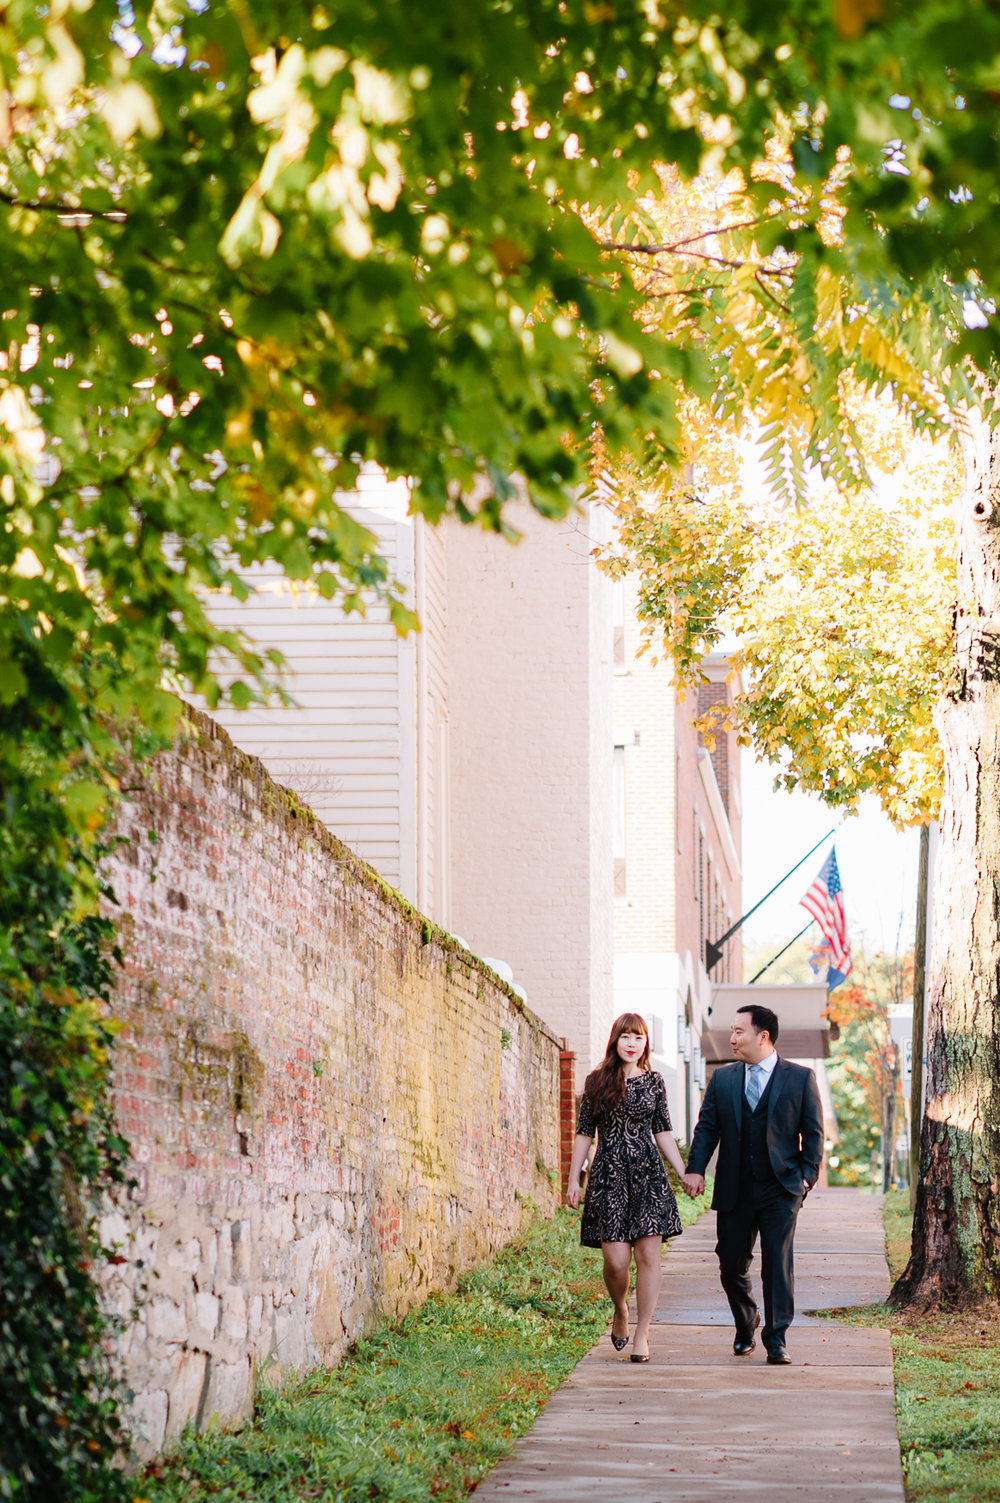 engagement_downtownfredericksburg_Fall_virginiaweddingphotographer_youseephotography_KatieKevin (1).jpg